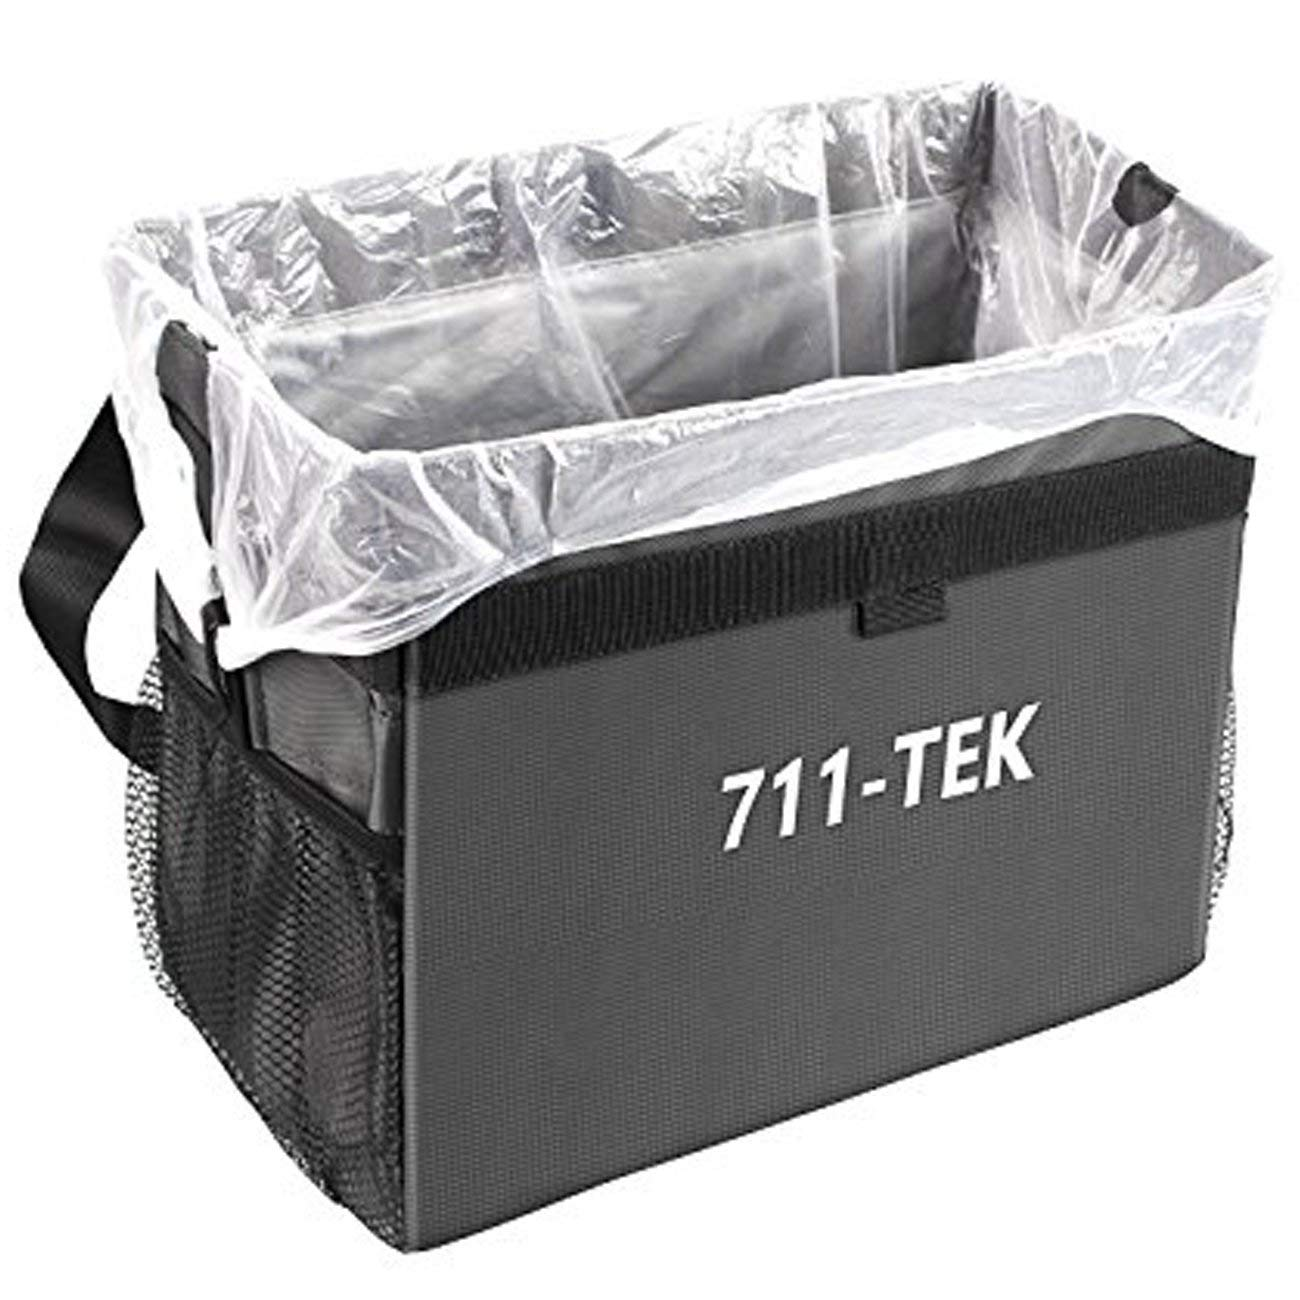 711TEK Car Trash Can, Leakproof and Weighted Portable Car Garbage Bag Basket Hanging for Auto Back Seat Black